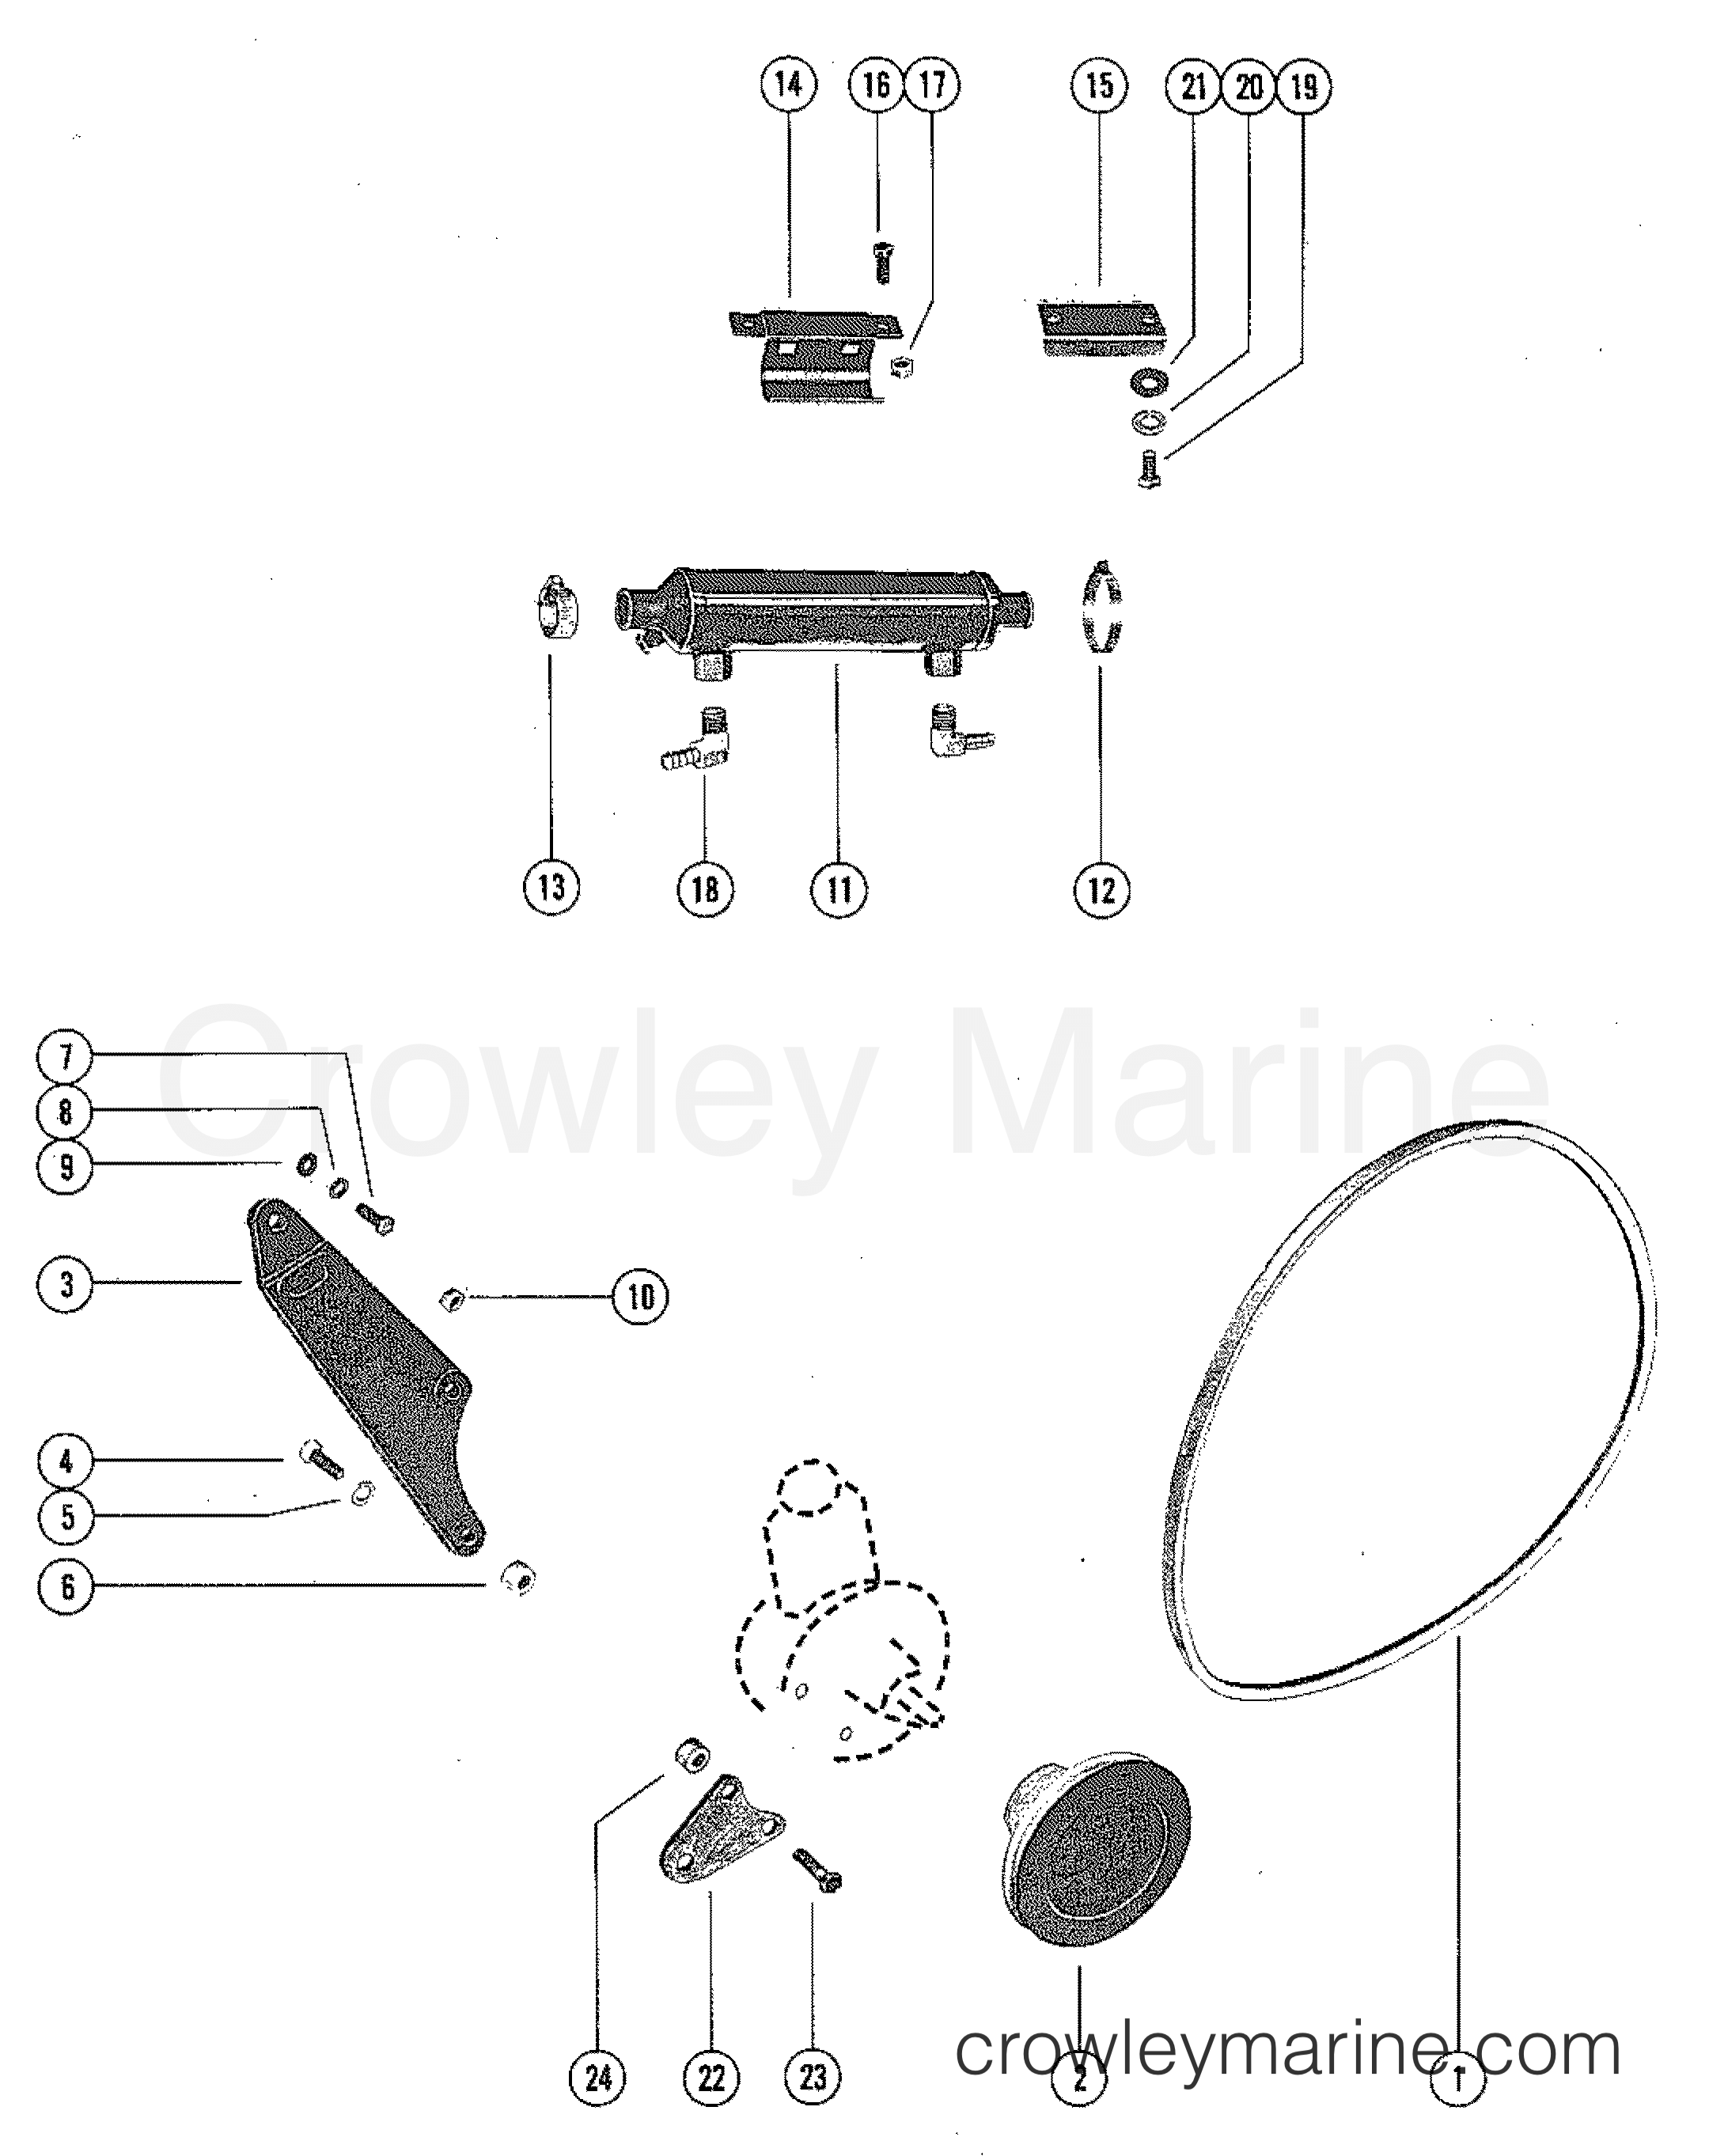 496 Mercruiser Parts Diagram moreover Chevy Manual Transmission History further Mercruiser Heat Exchanger Diagram further Ford 5 0 Engine Problems likewise Mercury Marine Engine Breakdown. on 454 496 repower